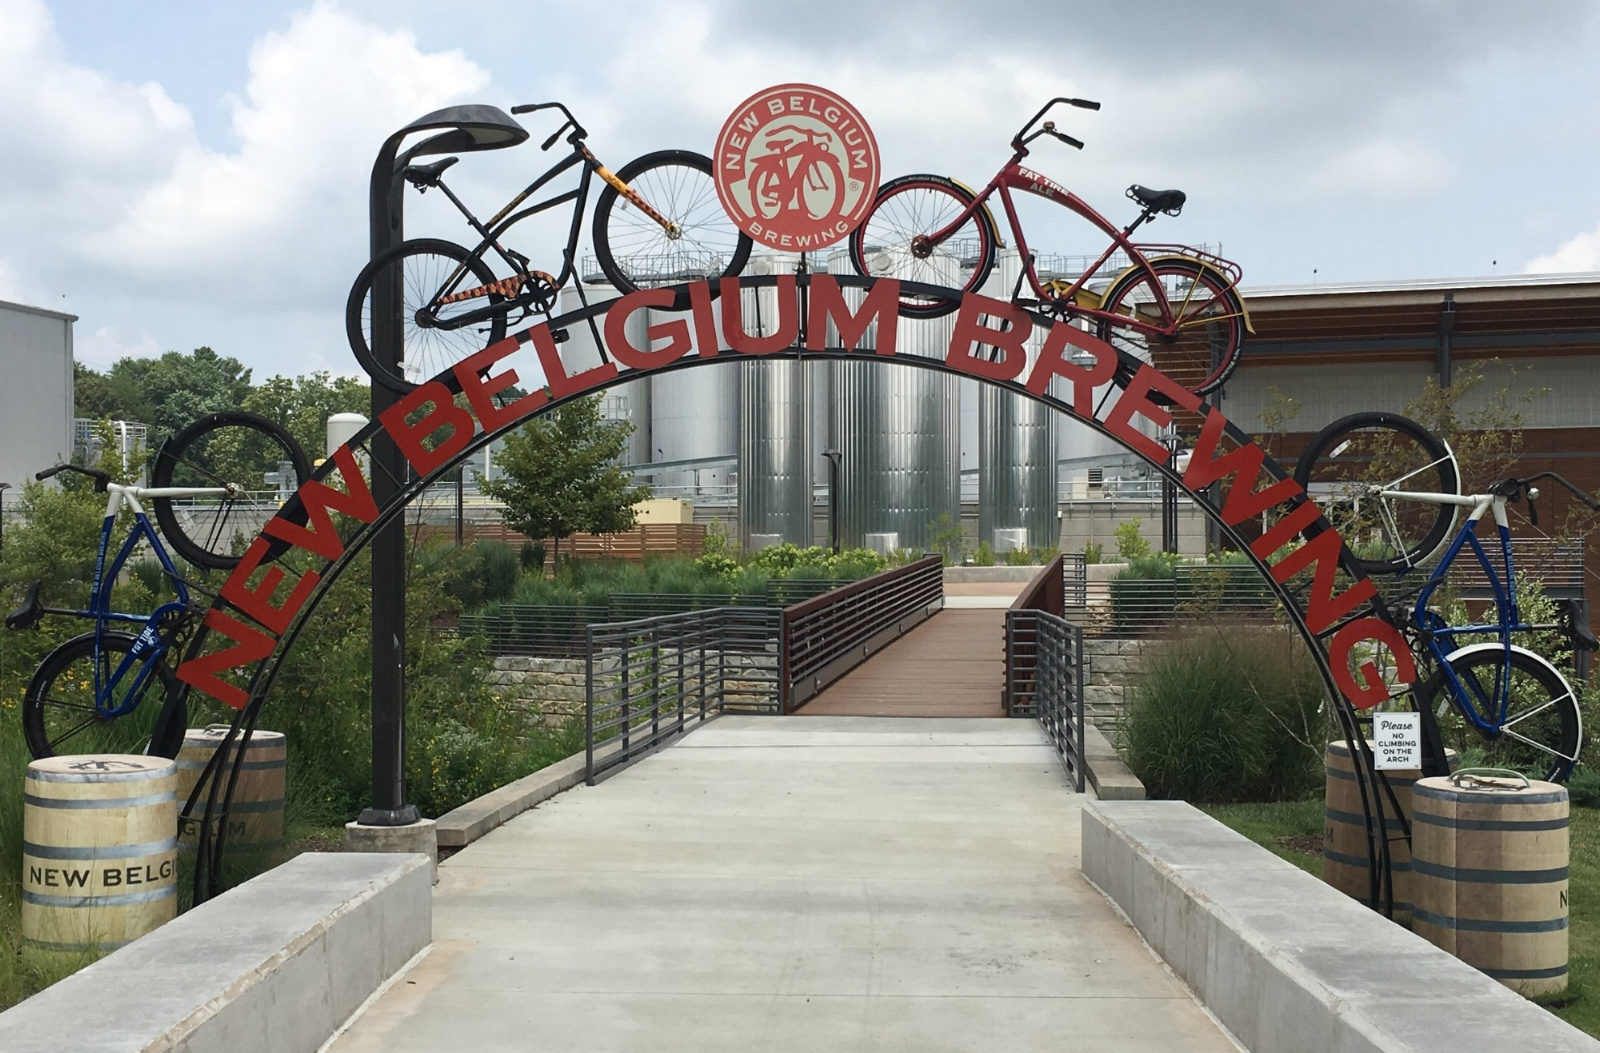 The bicycle entrance arch leading to the New Belgium production facility and offices.